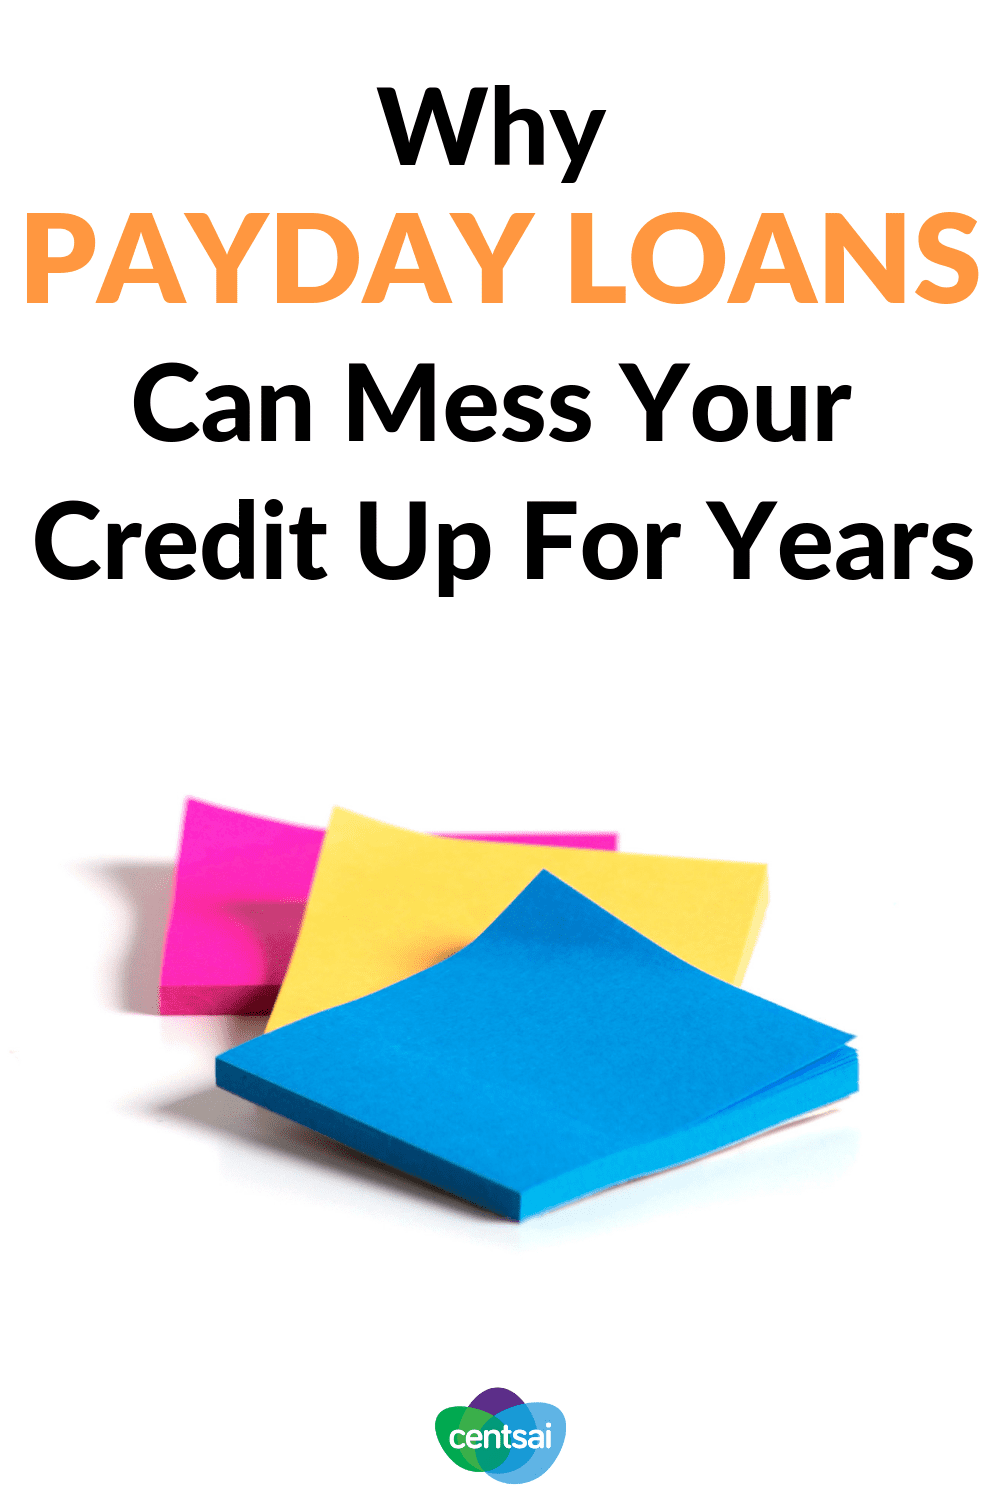 Why Are Payday Loans Bad How Can I Steer Clear Centsai